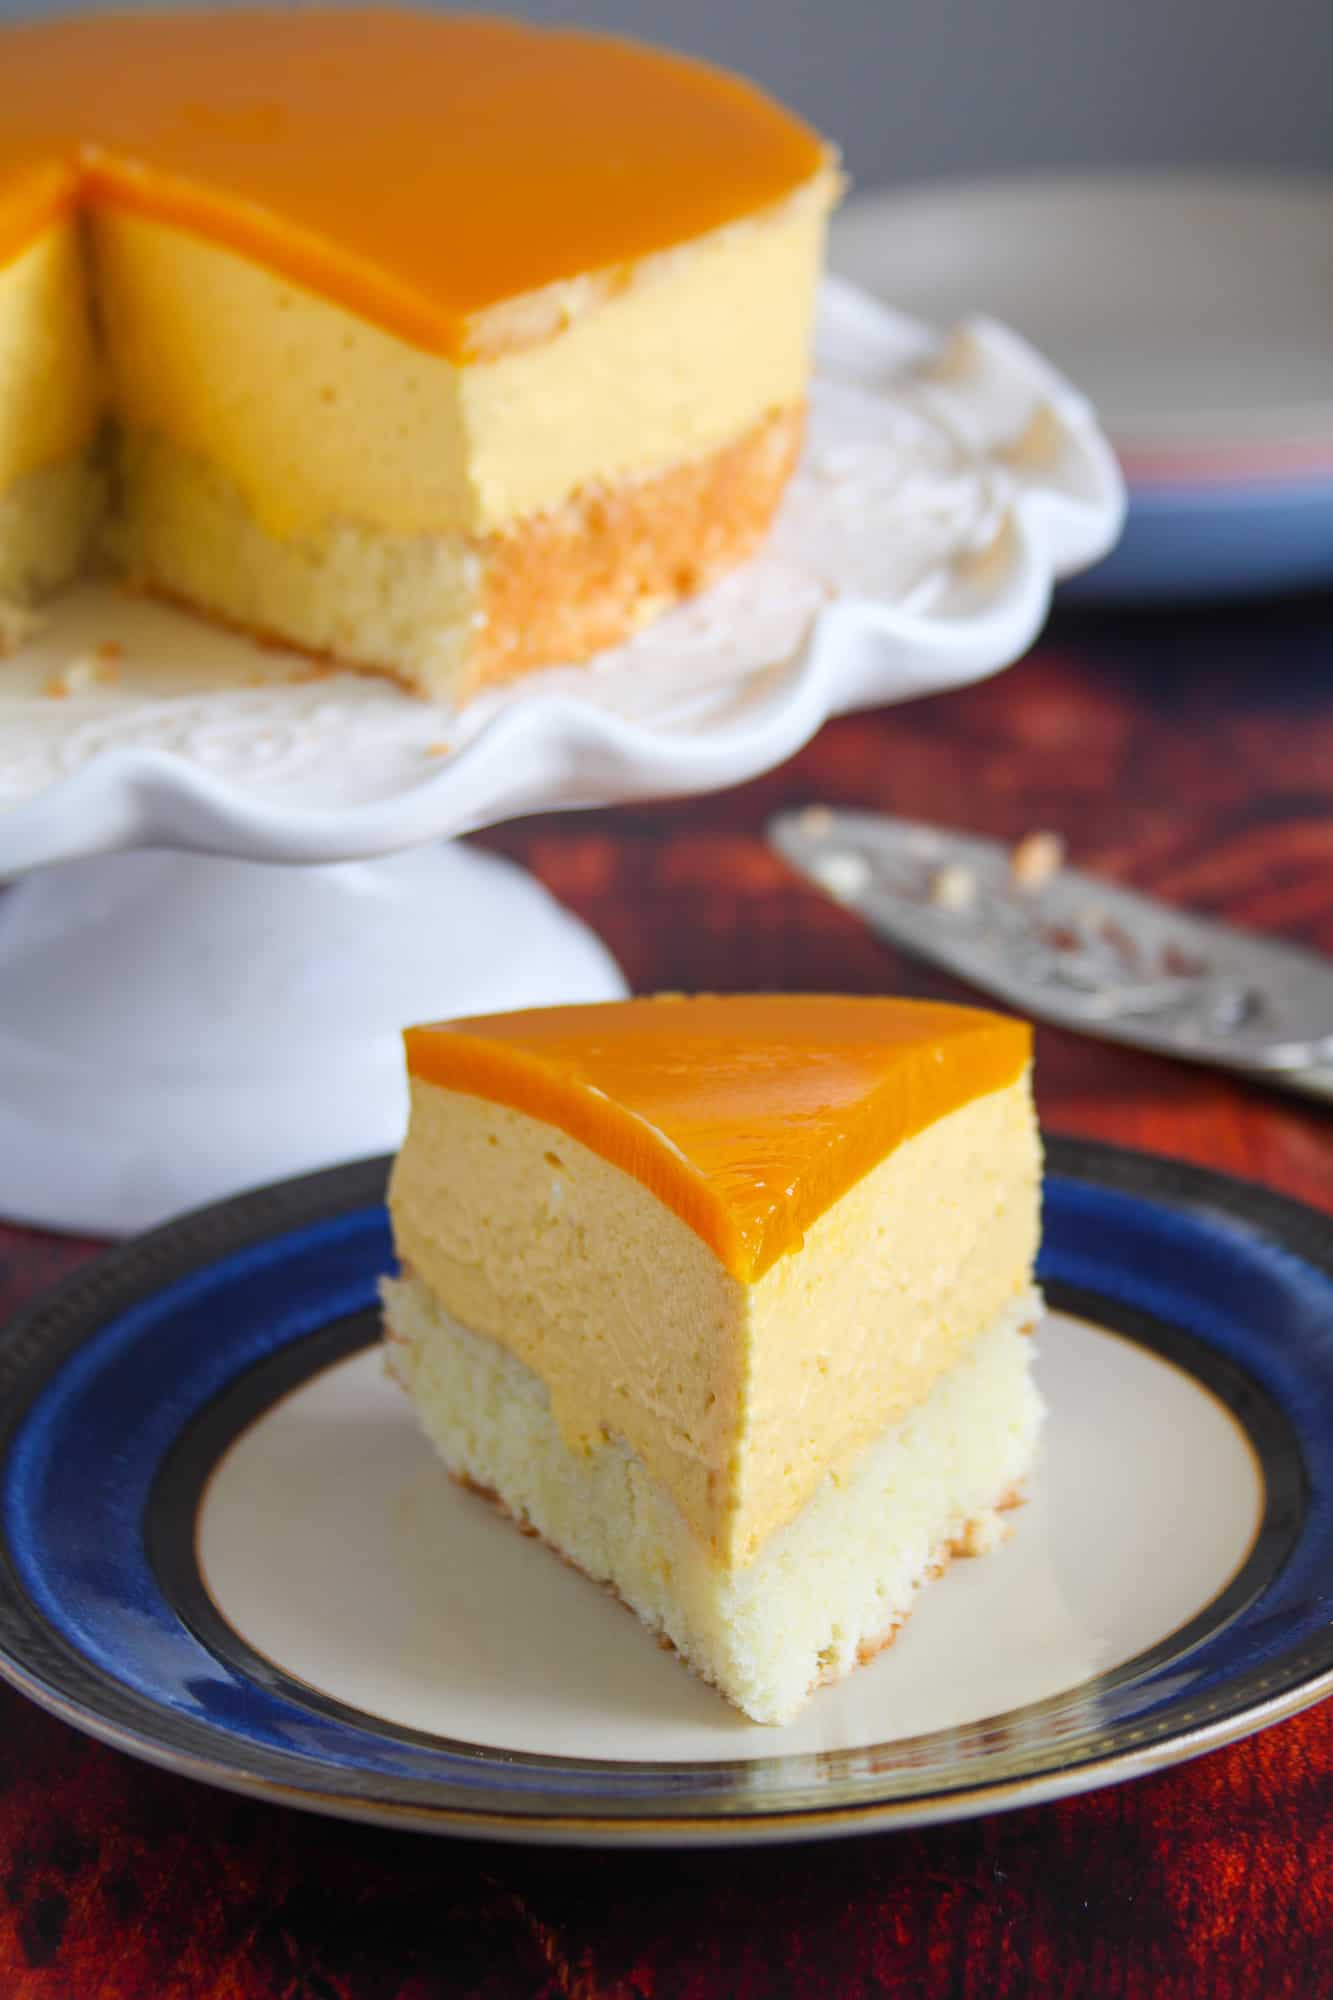 A slice of mango Mousse cake on a plate